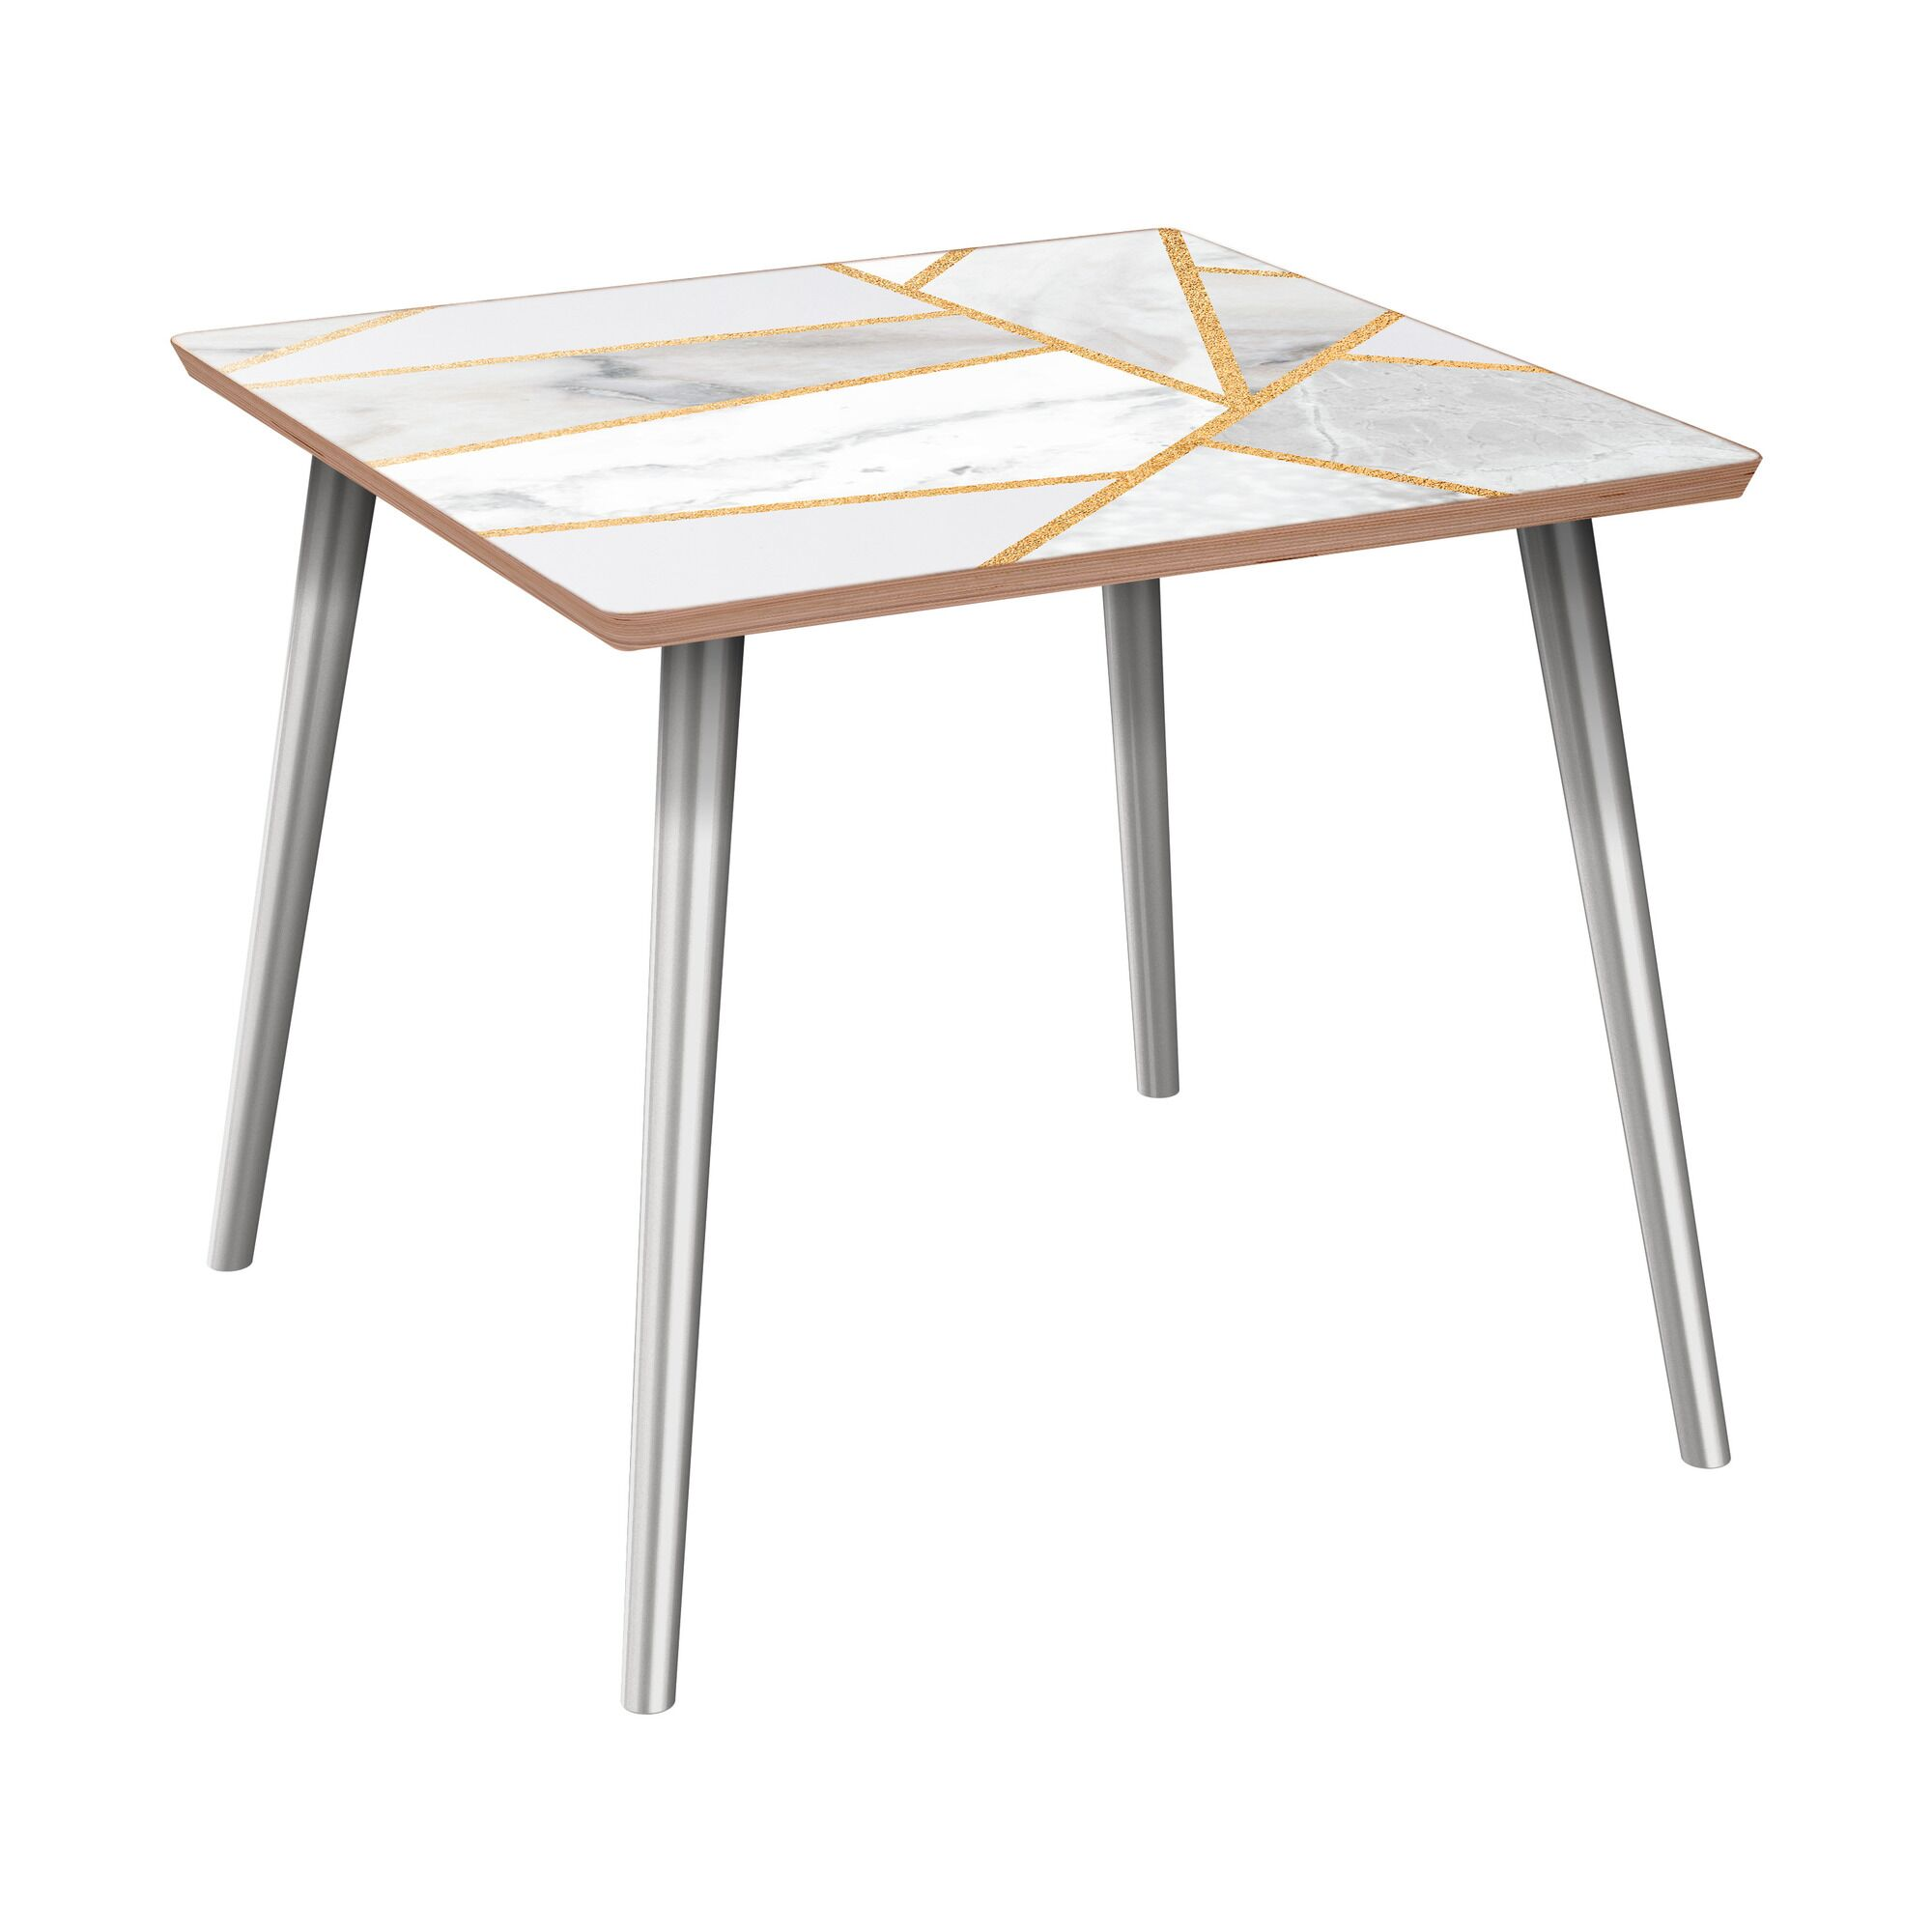 Mcgoldrick End Table Table Base Color: Chrome, Table Top Color: Walnut/White